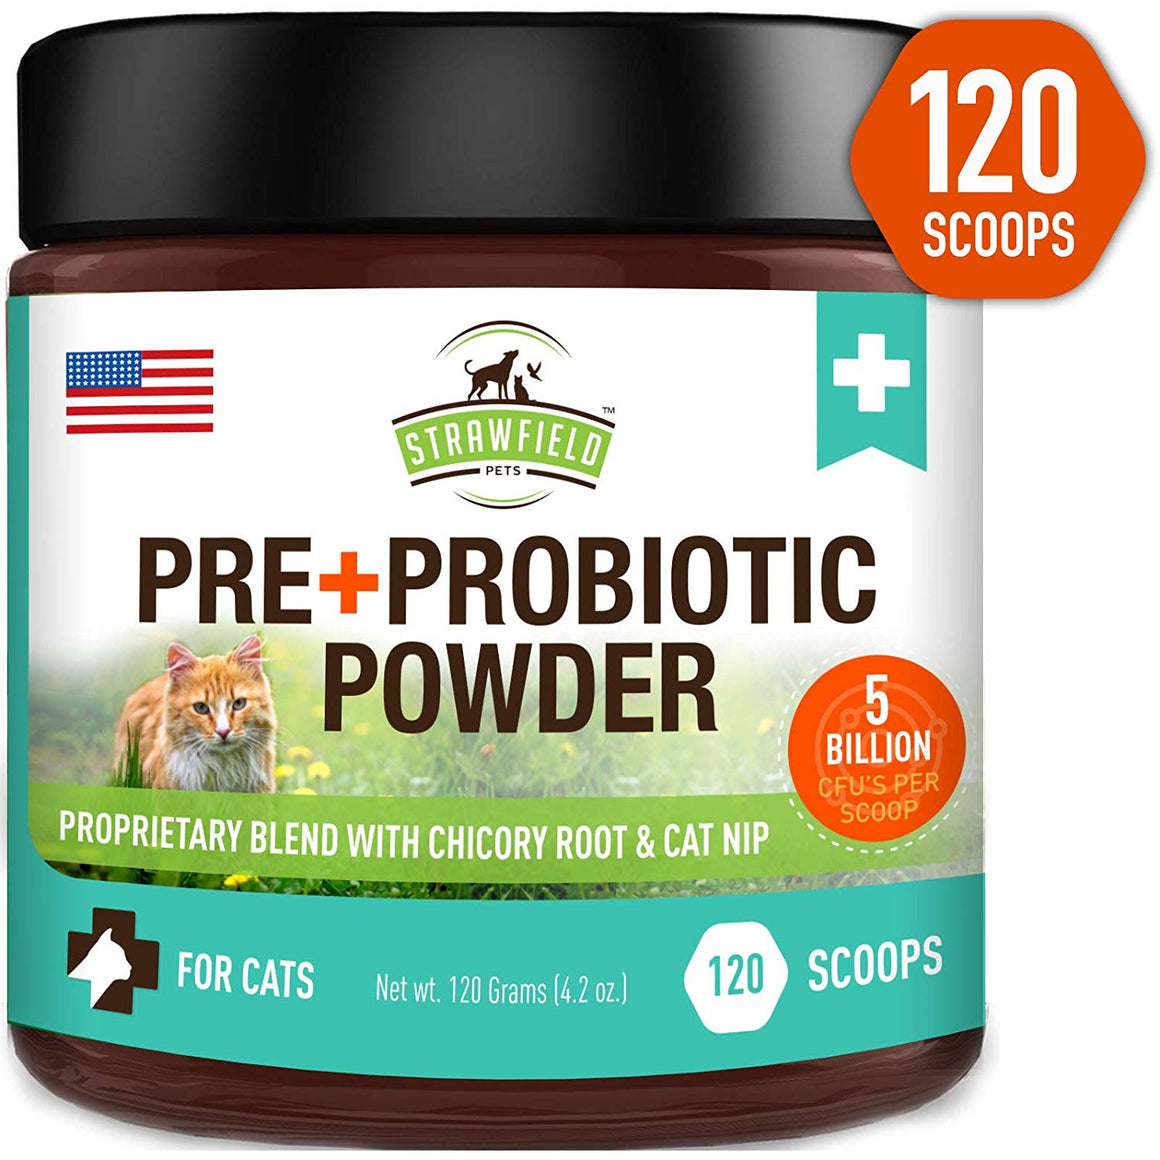 Pre + Probiotic Powder for Cats, 4.2 oz, with 5 Billion CFUs with Chicory Root & Catnip